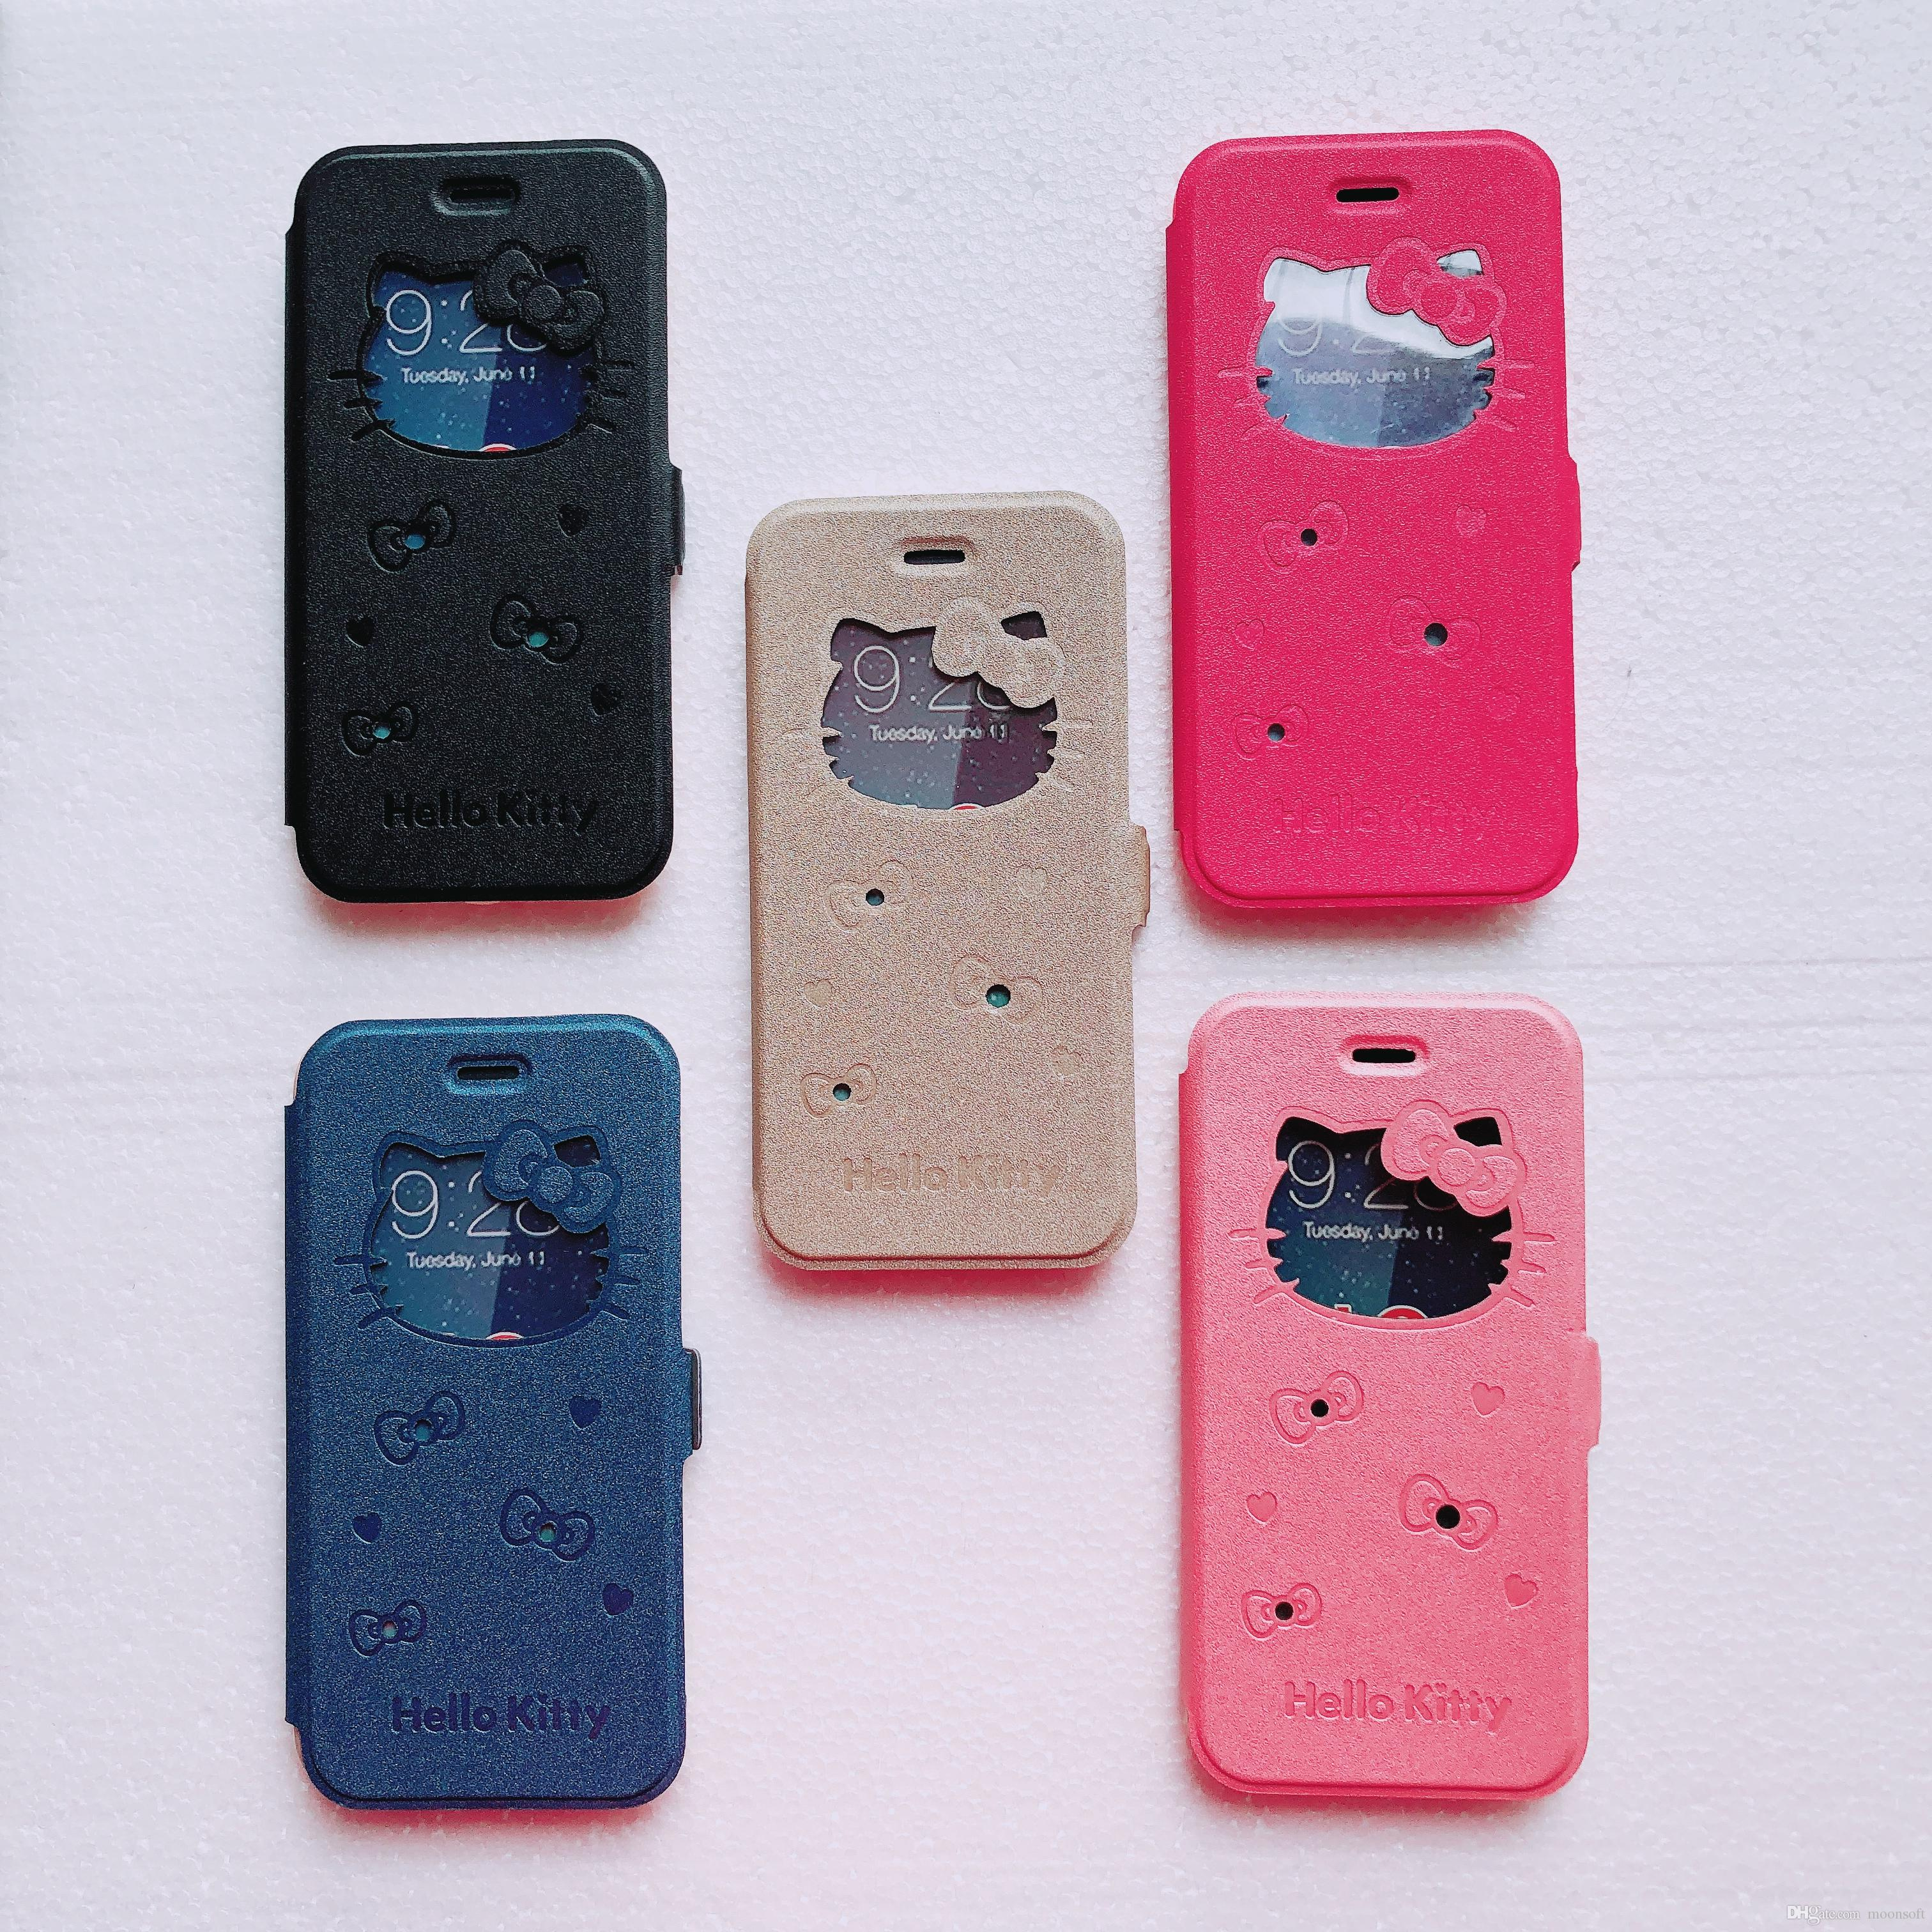 885ef1262 For IPhone 6 6S Plus PU Leather Flip Cell Phone Case Cover Shell With View  Window Hello Kitty Cartoon And Kickstand Phone Case Uncommon Cell Phone  Cases ...